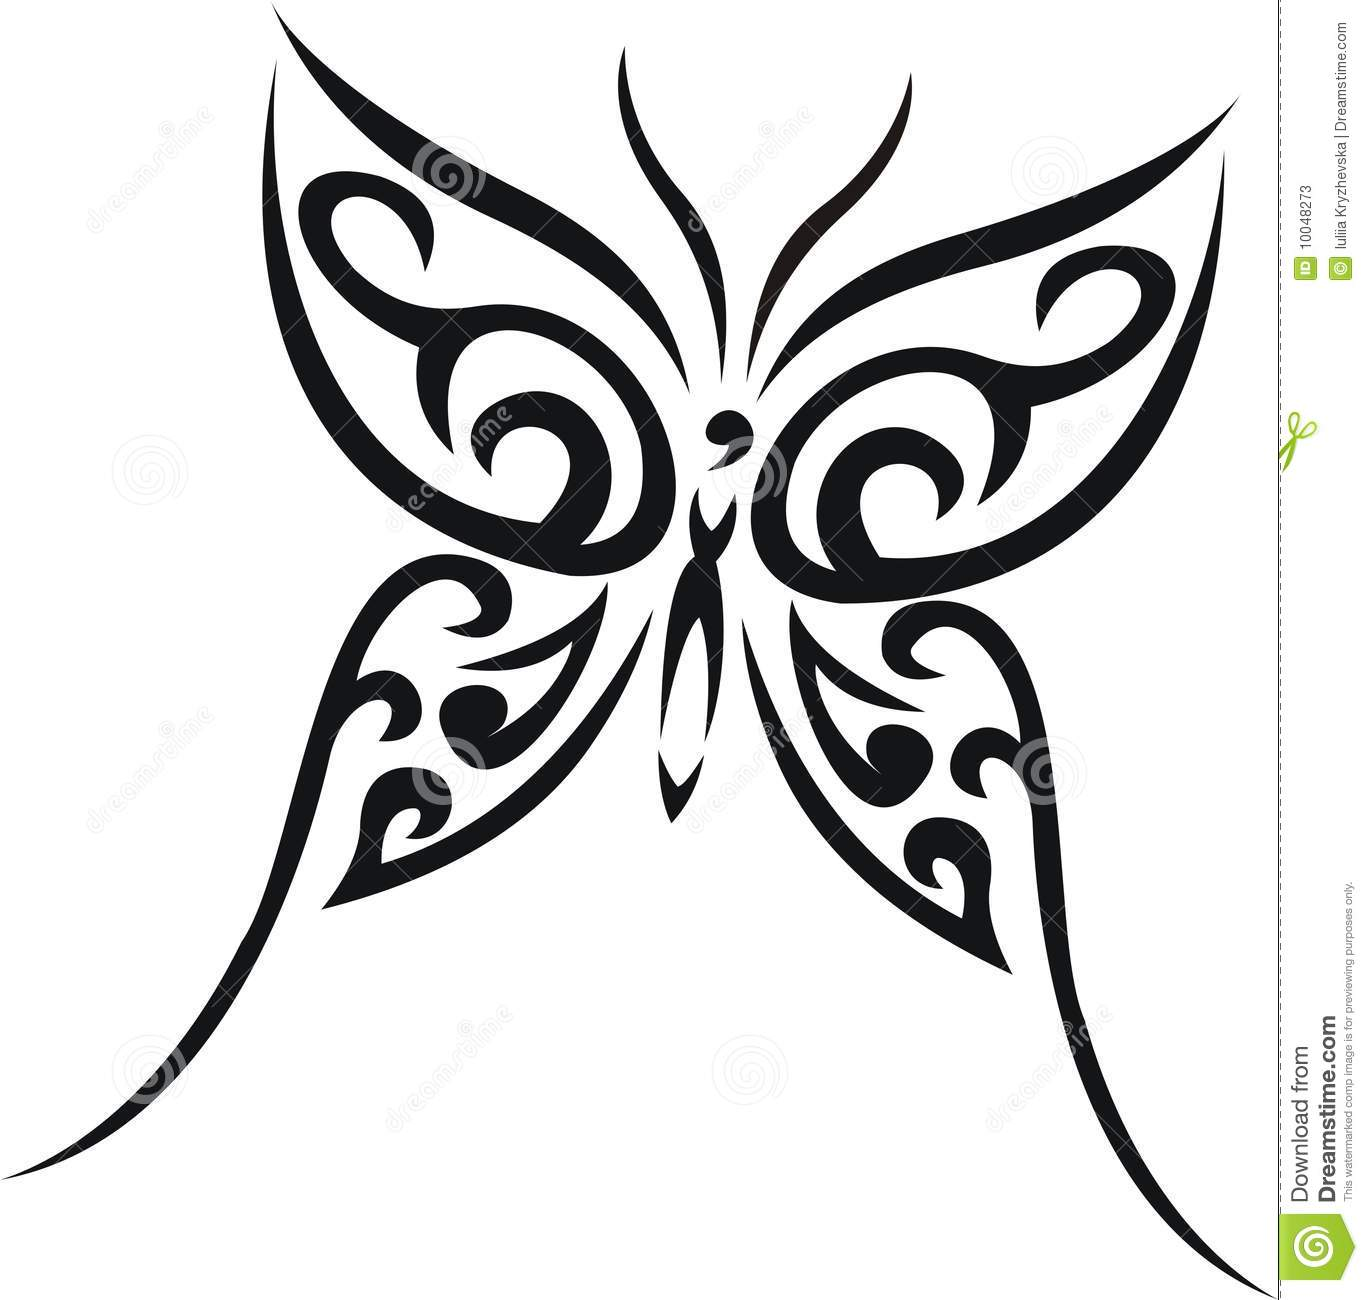 Tribal-Tattoos Black-Tribal-Butterfly-Tattoo-Stencil